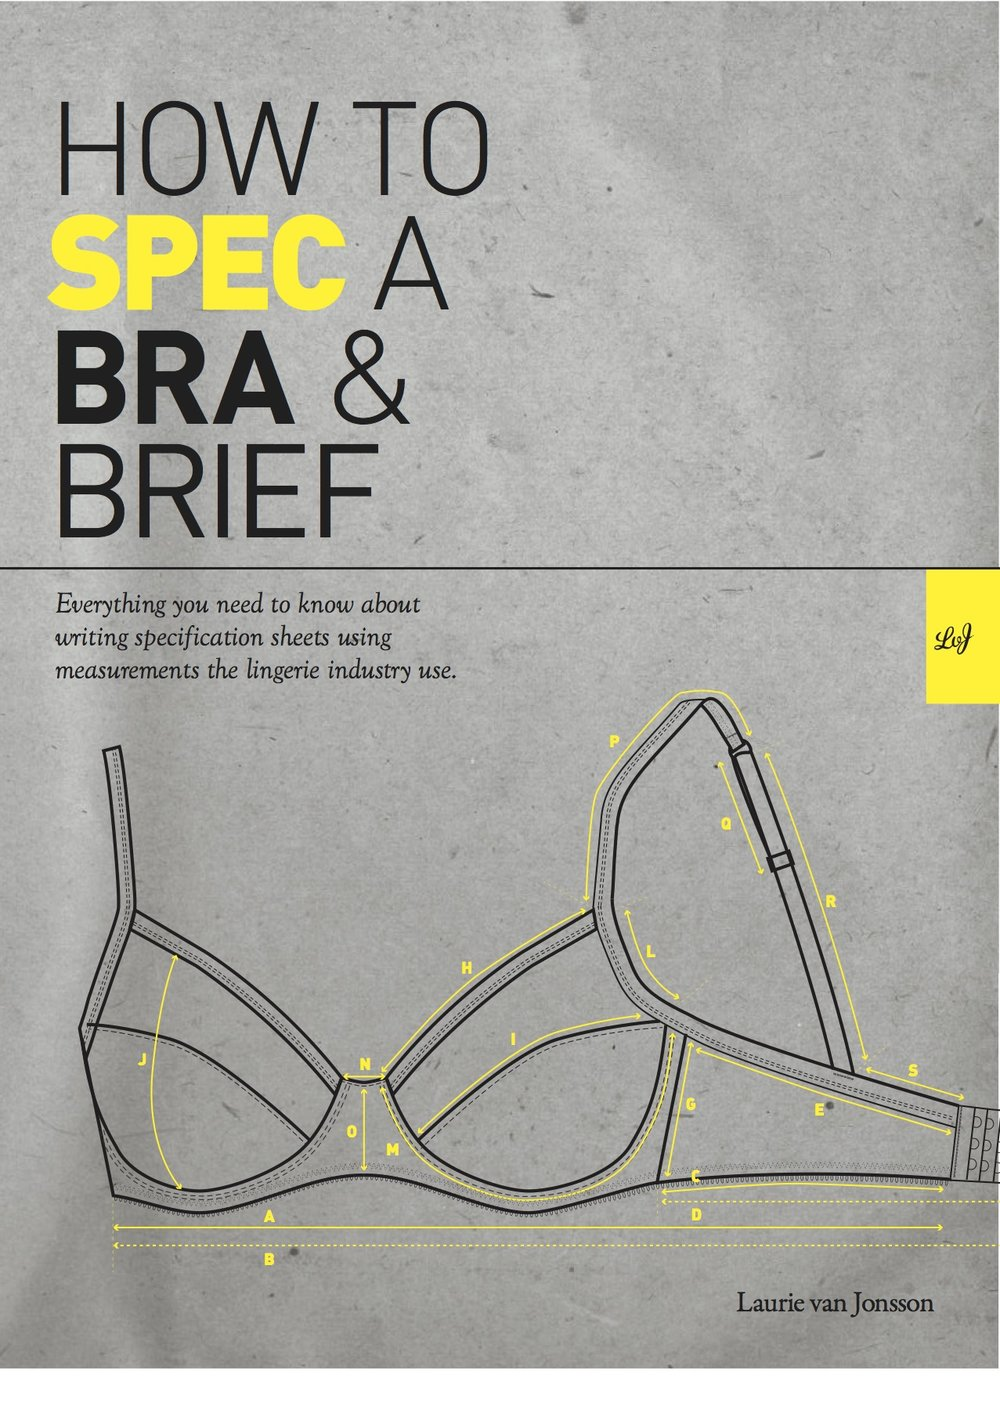 A book for those who wish to learn about  writing their own specification sheet  for their lingerie